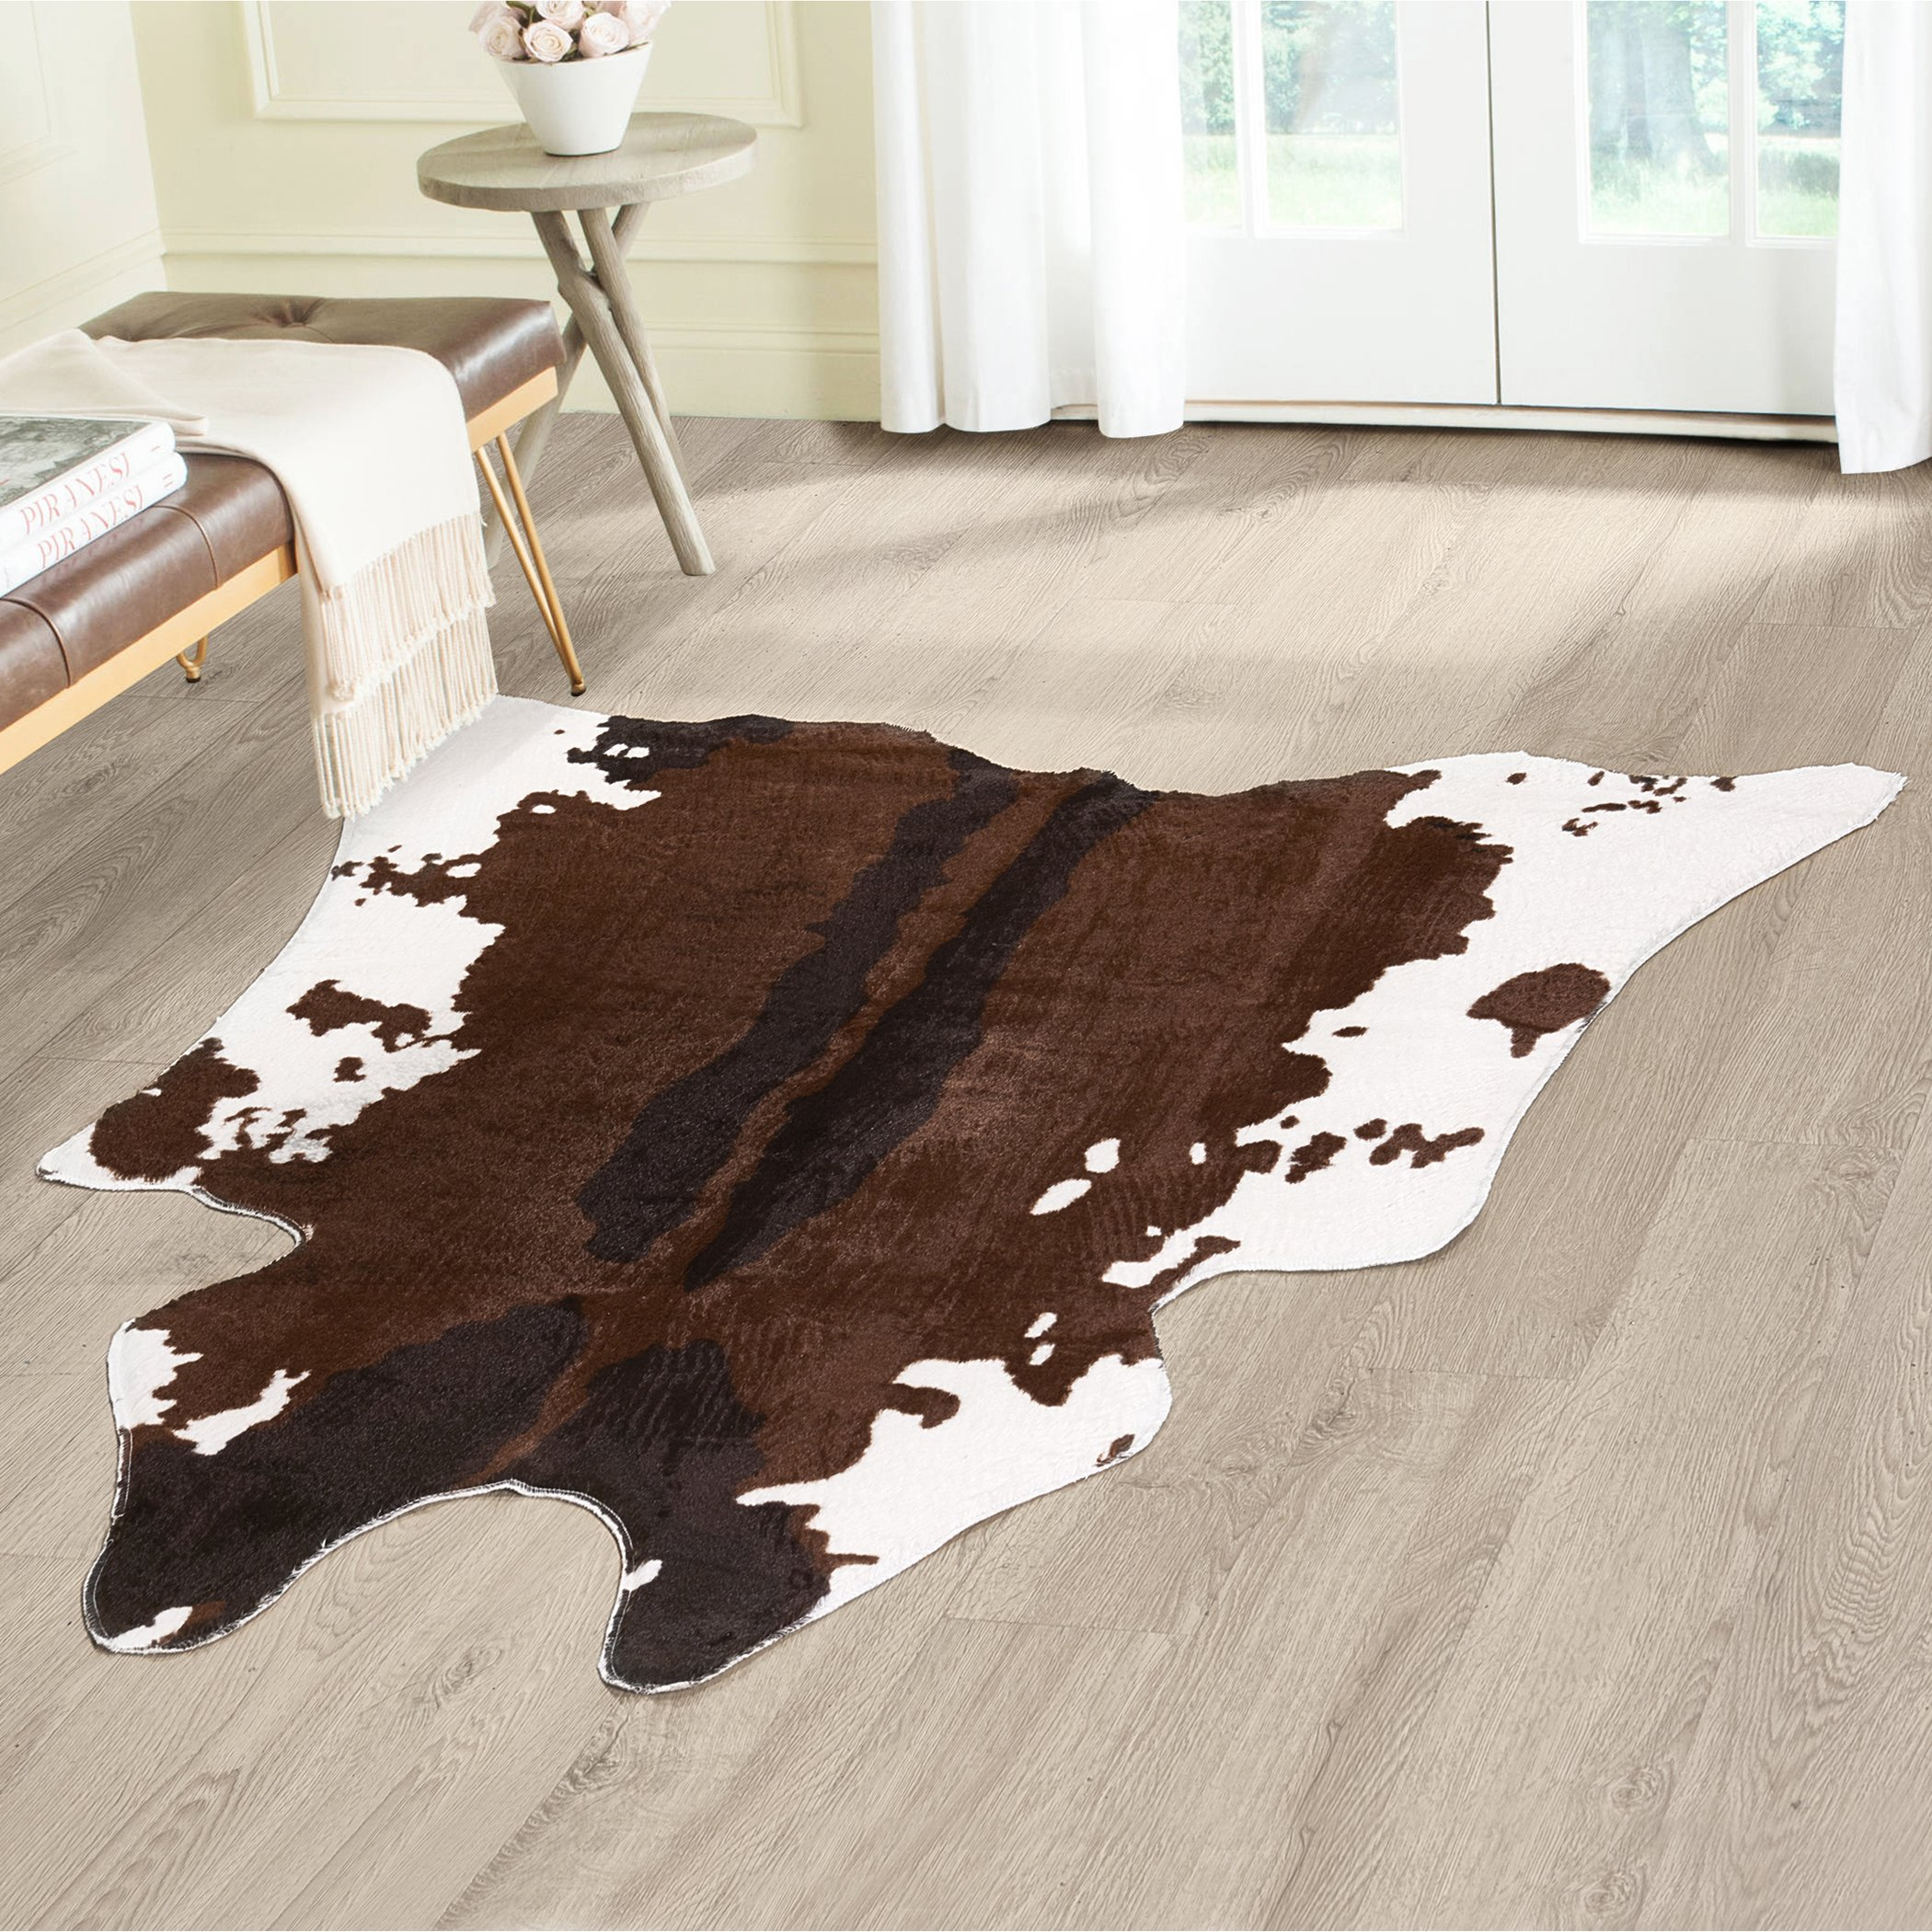 Cow Hide Animal Print Area Rug – Measures 4.1 x 4.15, Faux Cow Print Carpet, Brown and Ivory, Beautiful Décor for your Home